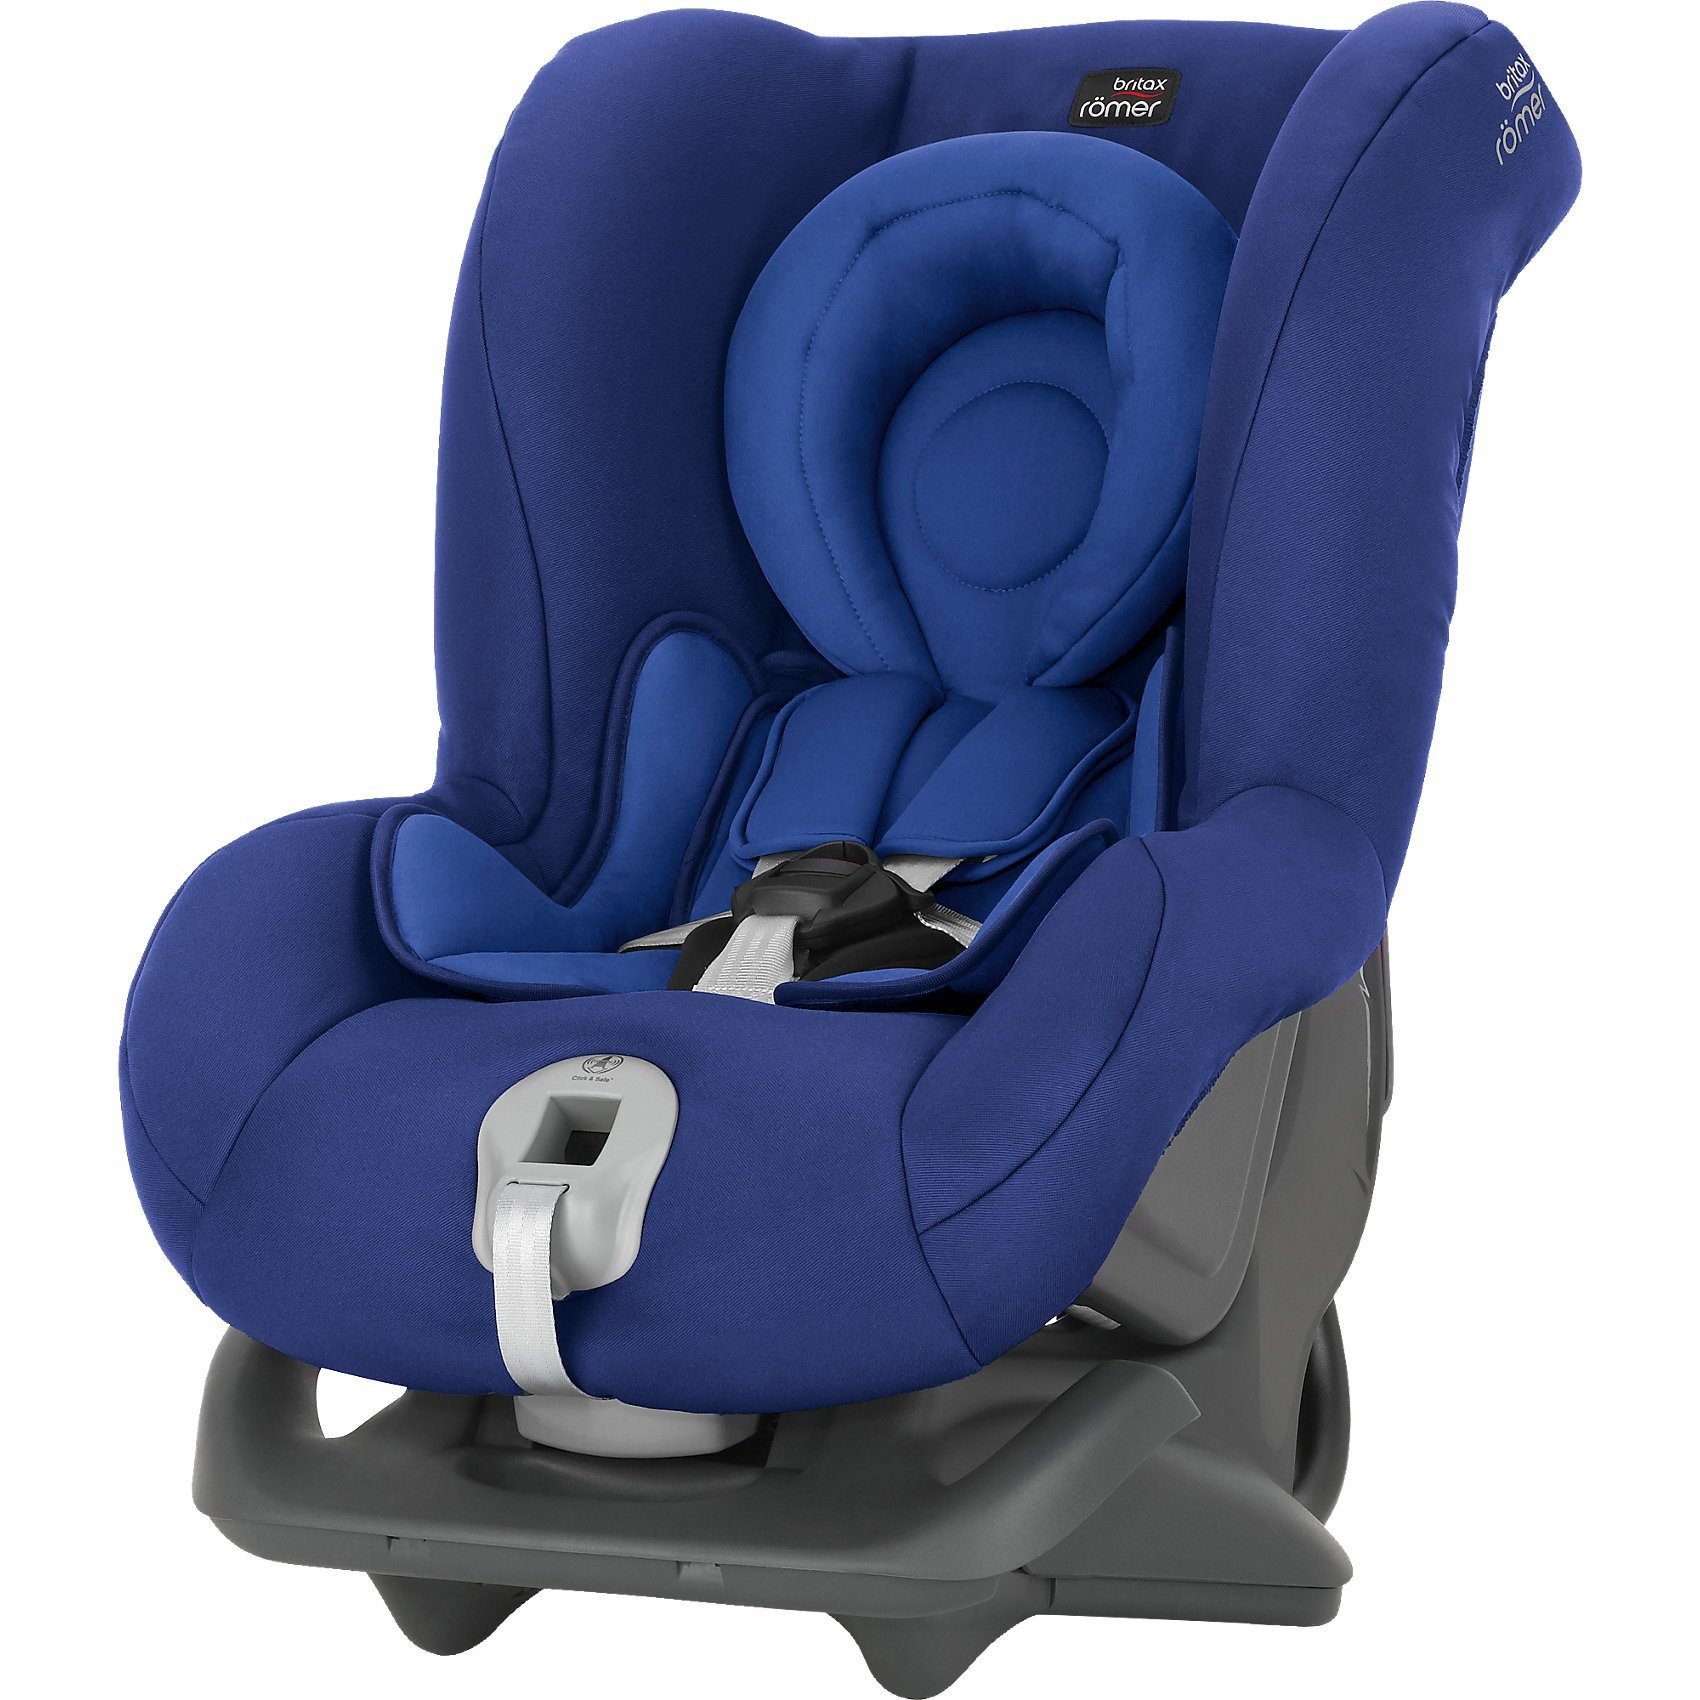 Britax Römer Auto-Kindersitz First Class Plus, Ocean Blue, 2016